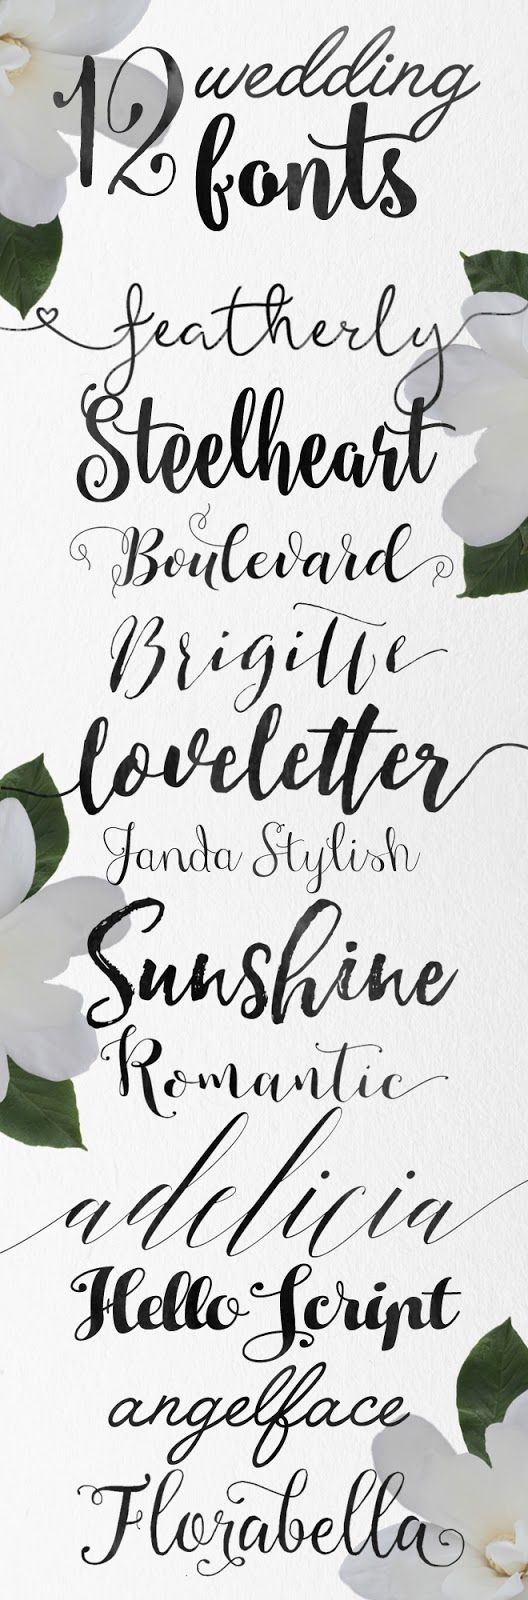 - Skyla Design -: Calligraphy wedding fonts - some free #fonts #font #bundle #script #brush #download #type #graphic #design #print #watercolor #free #cursive #calligraphy #modern #digital #handwriting #hand #lettered #drawn #free #freebies